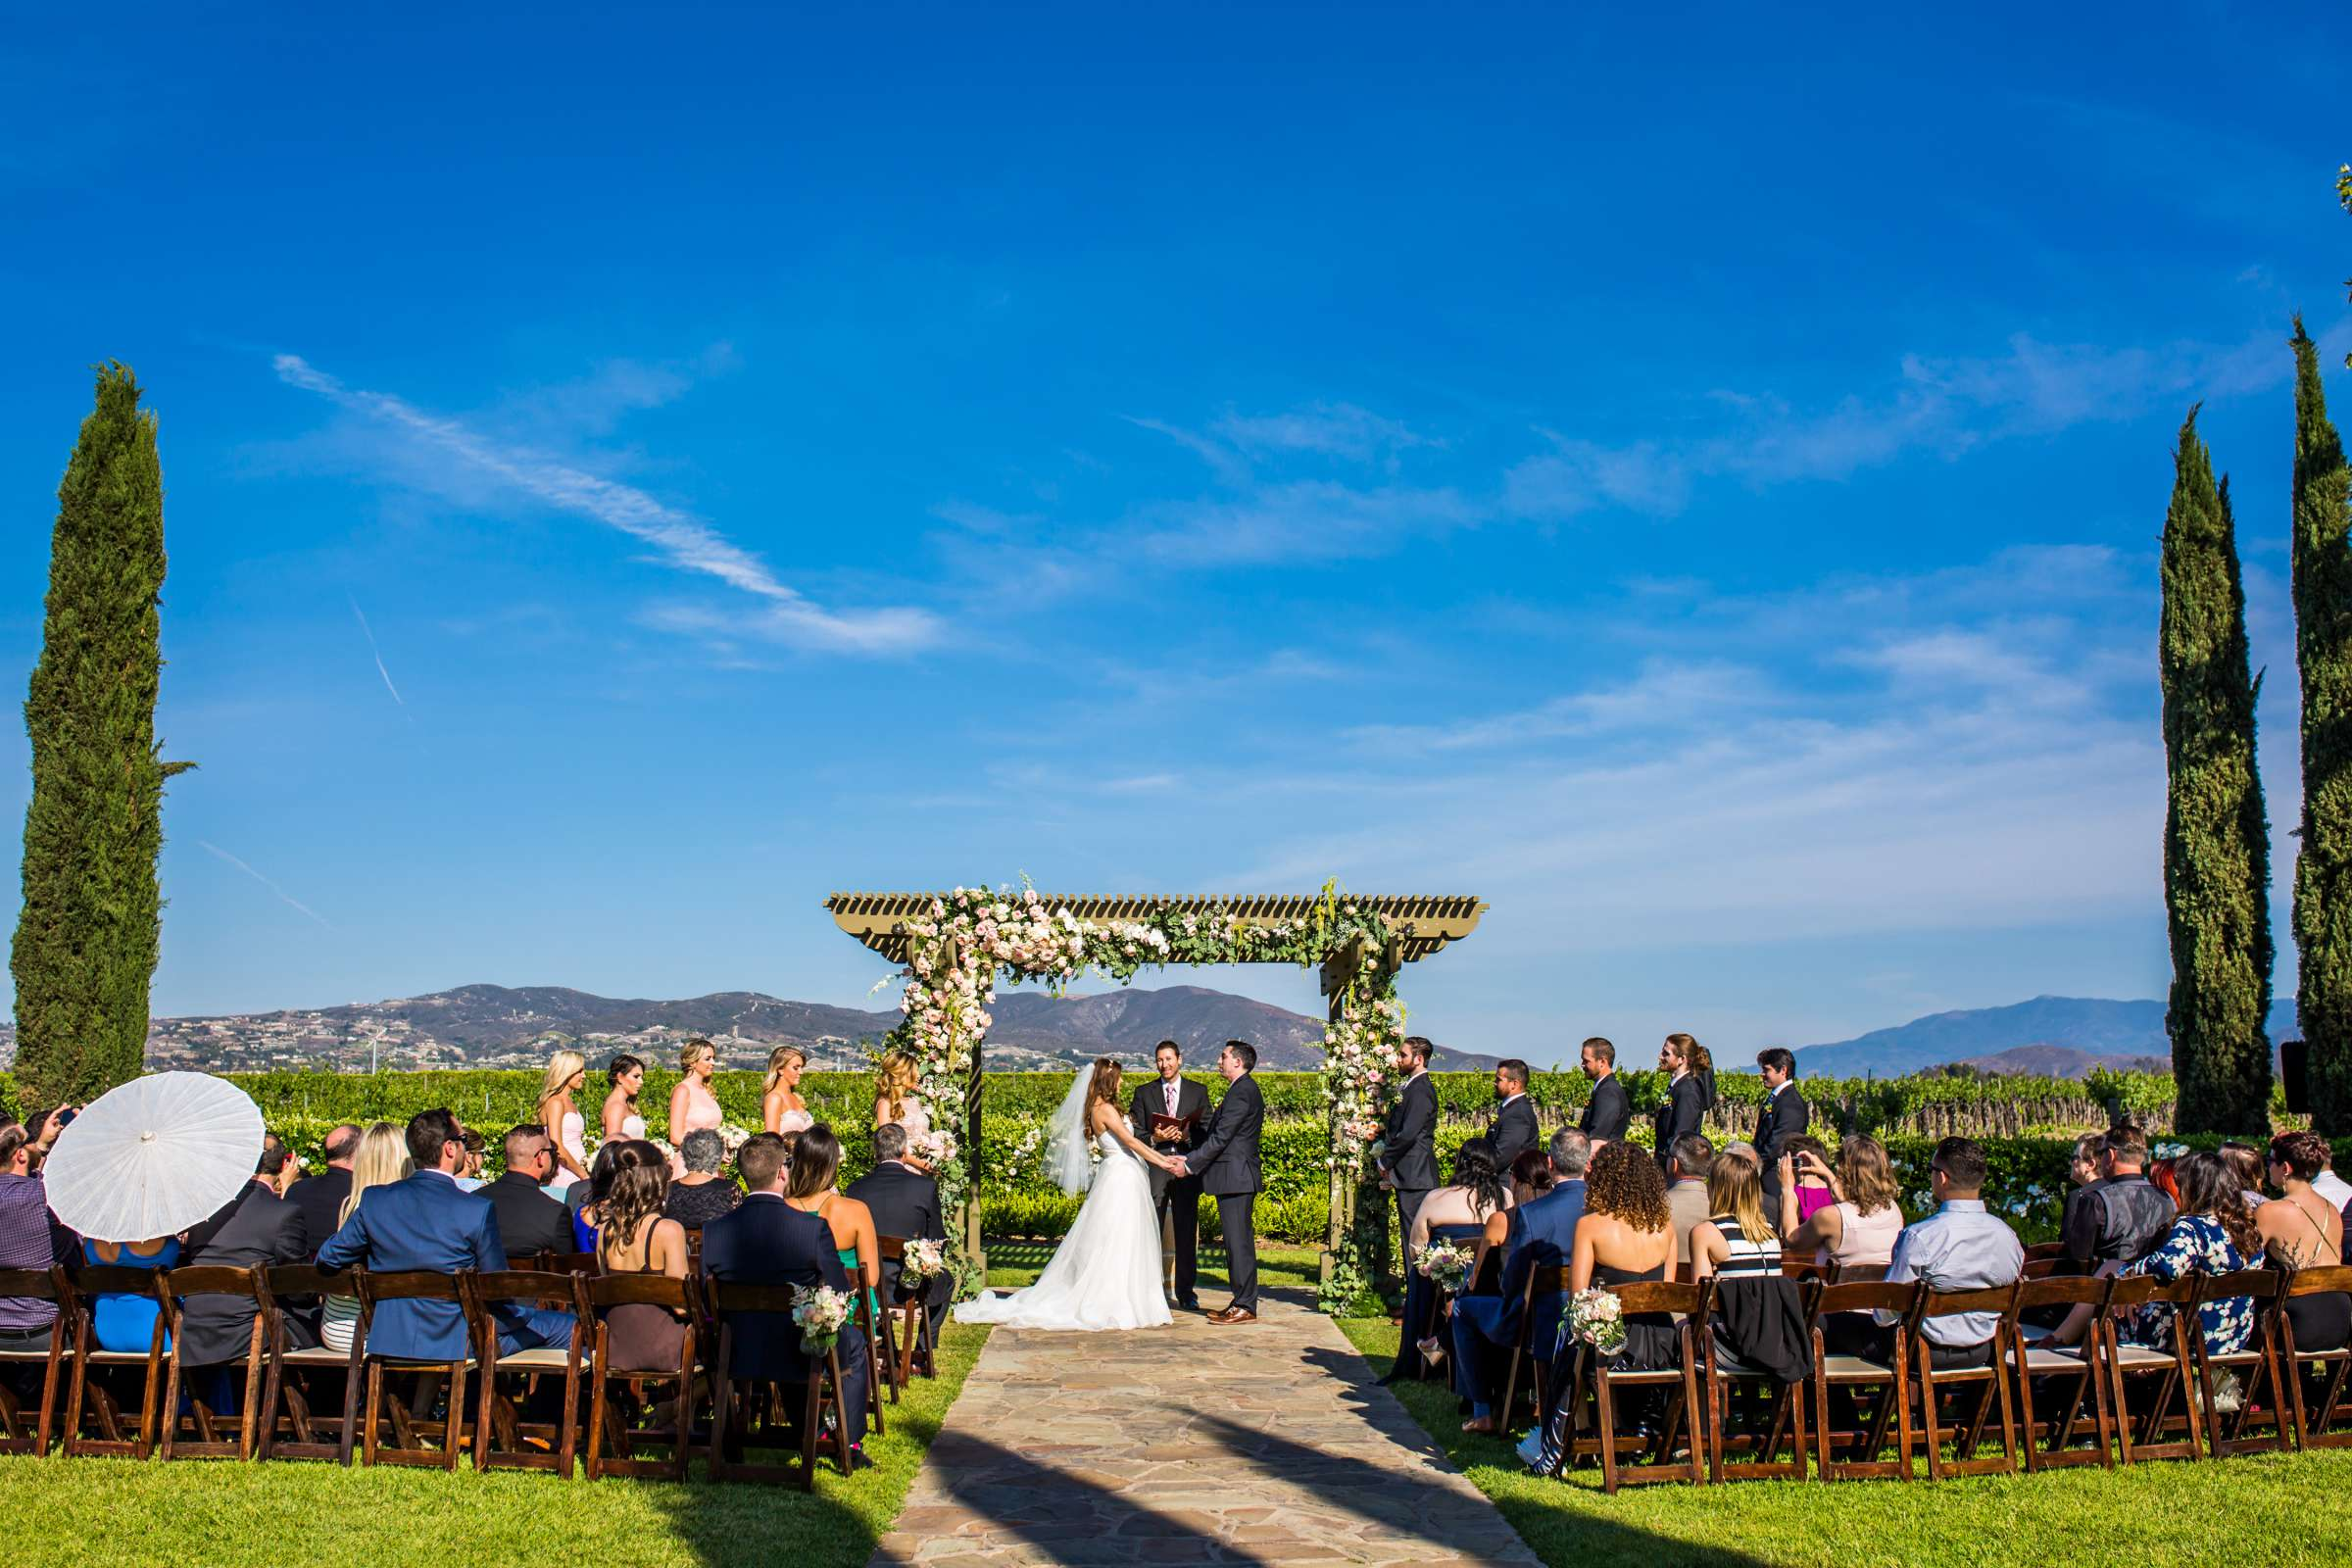 Ponte Estate Winery Wedding coordinated by Seven Stems Floral Design & Events, Jennifer and Justin Wedding Photo #70 by True Photography